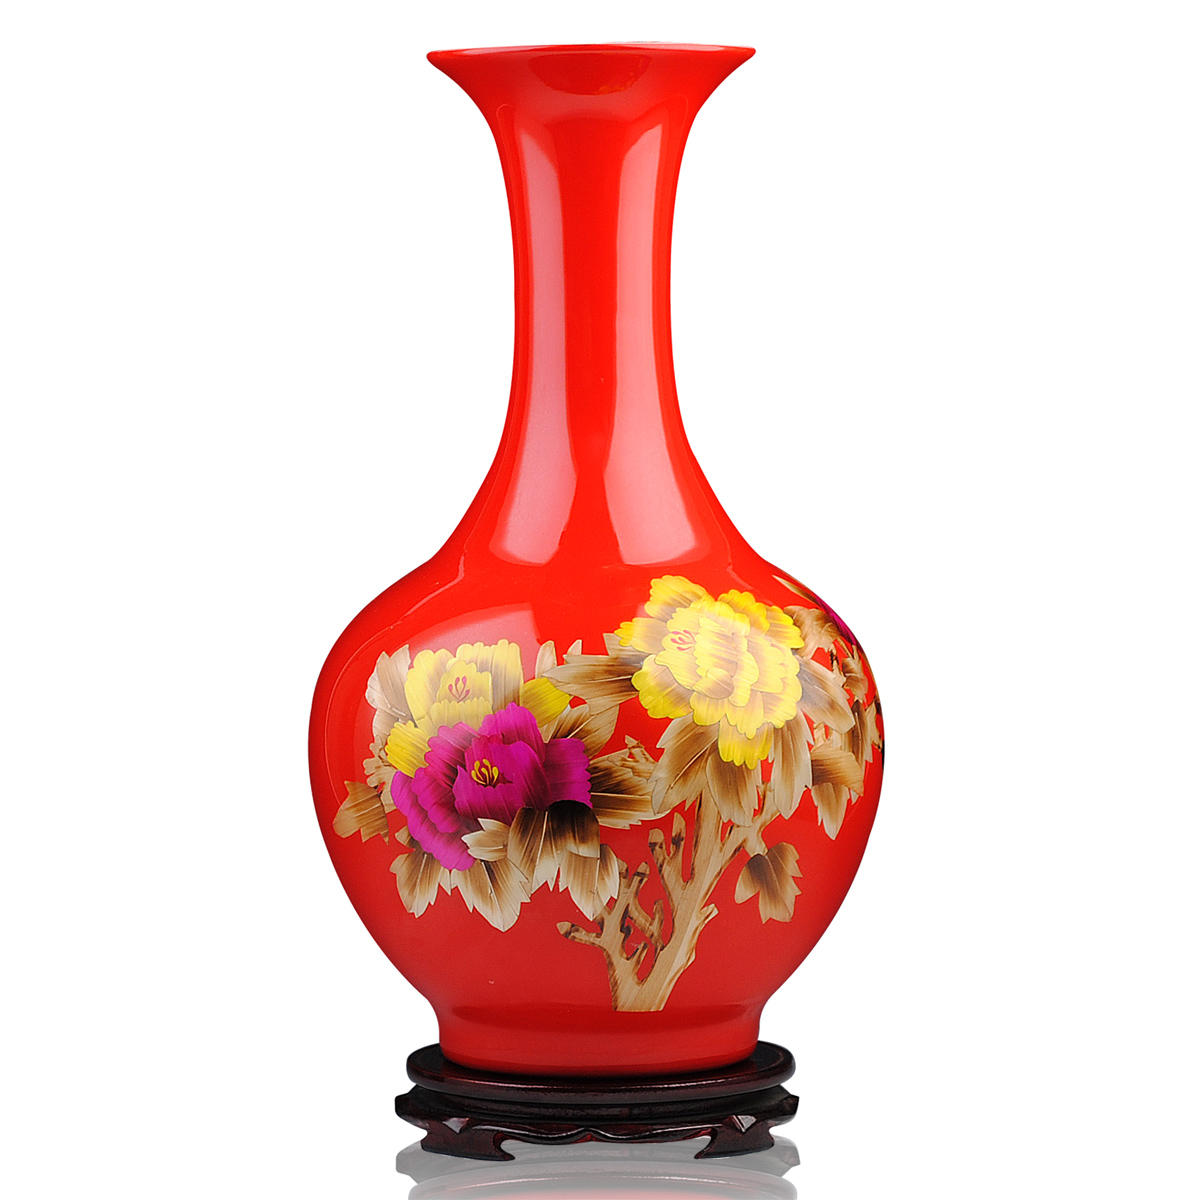 Large ornamental vases - Jingdezhen Ceramics Golden Peony Vase With Red Straw Painting Vases Chinese Ornaments Ornaments Large Living Room